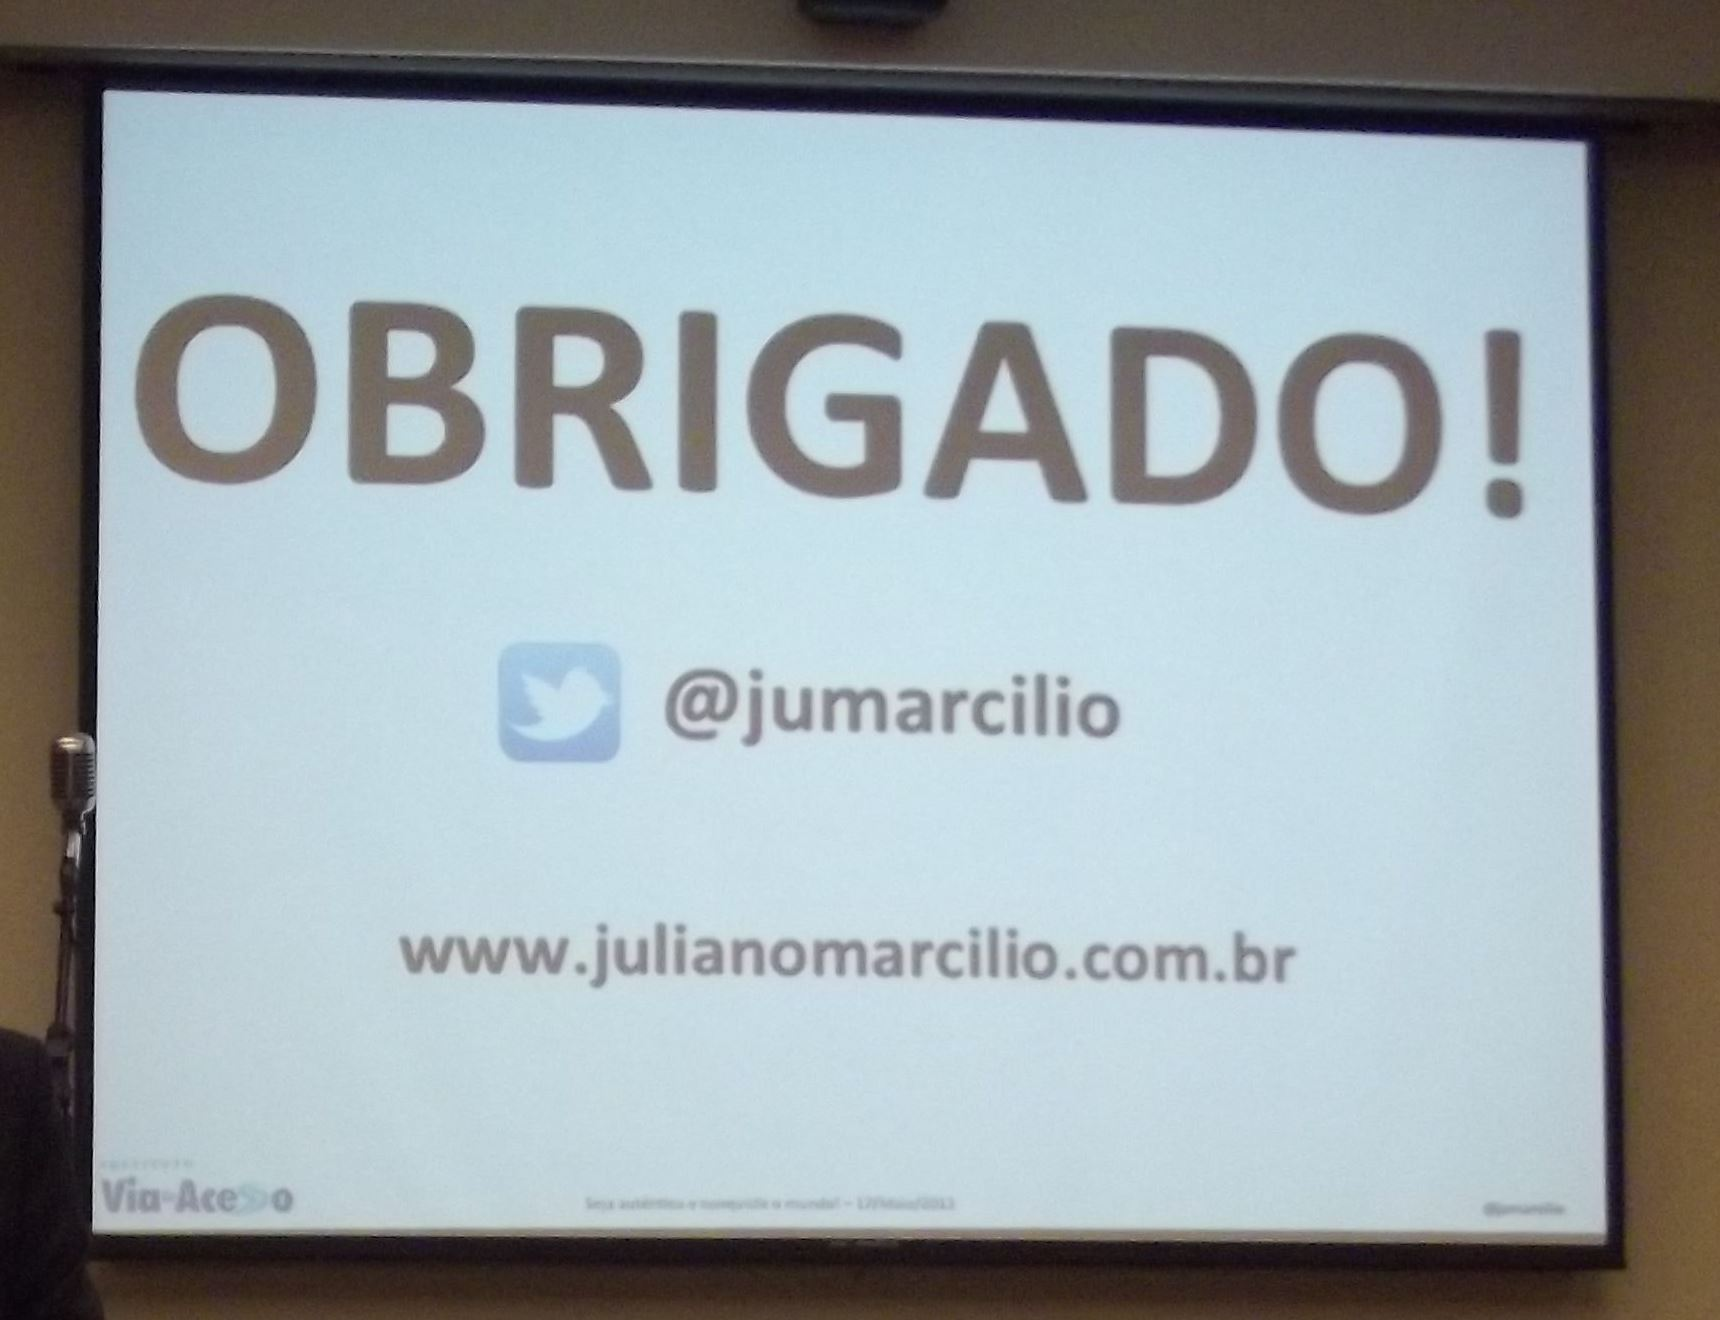 Confira a galeria de fotos do seminrio com Juliano Marcilio